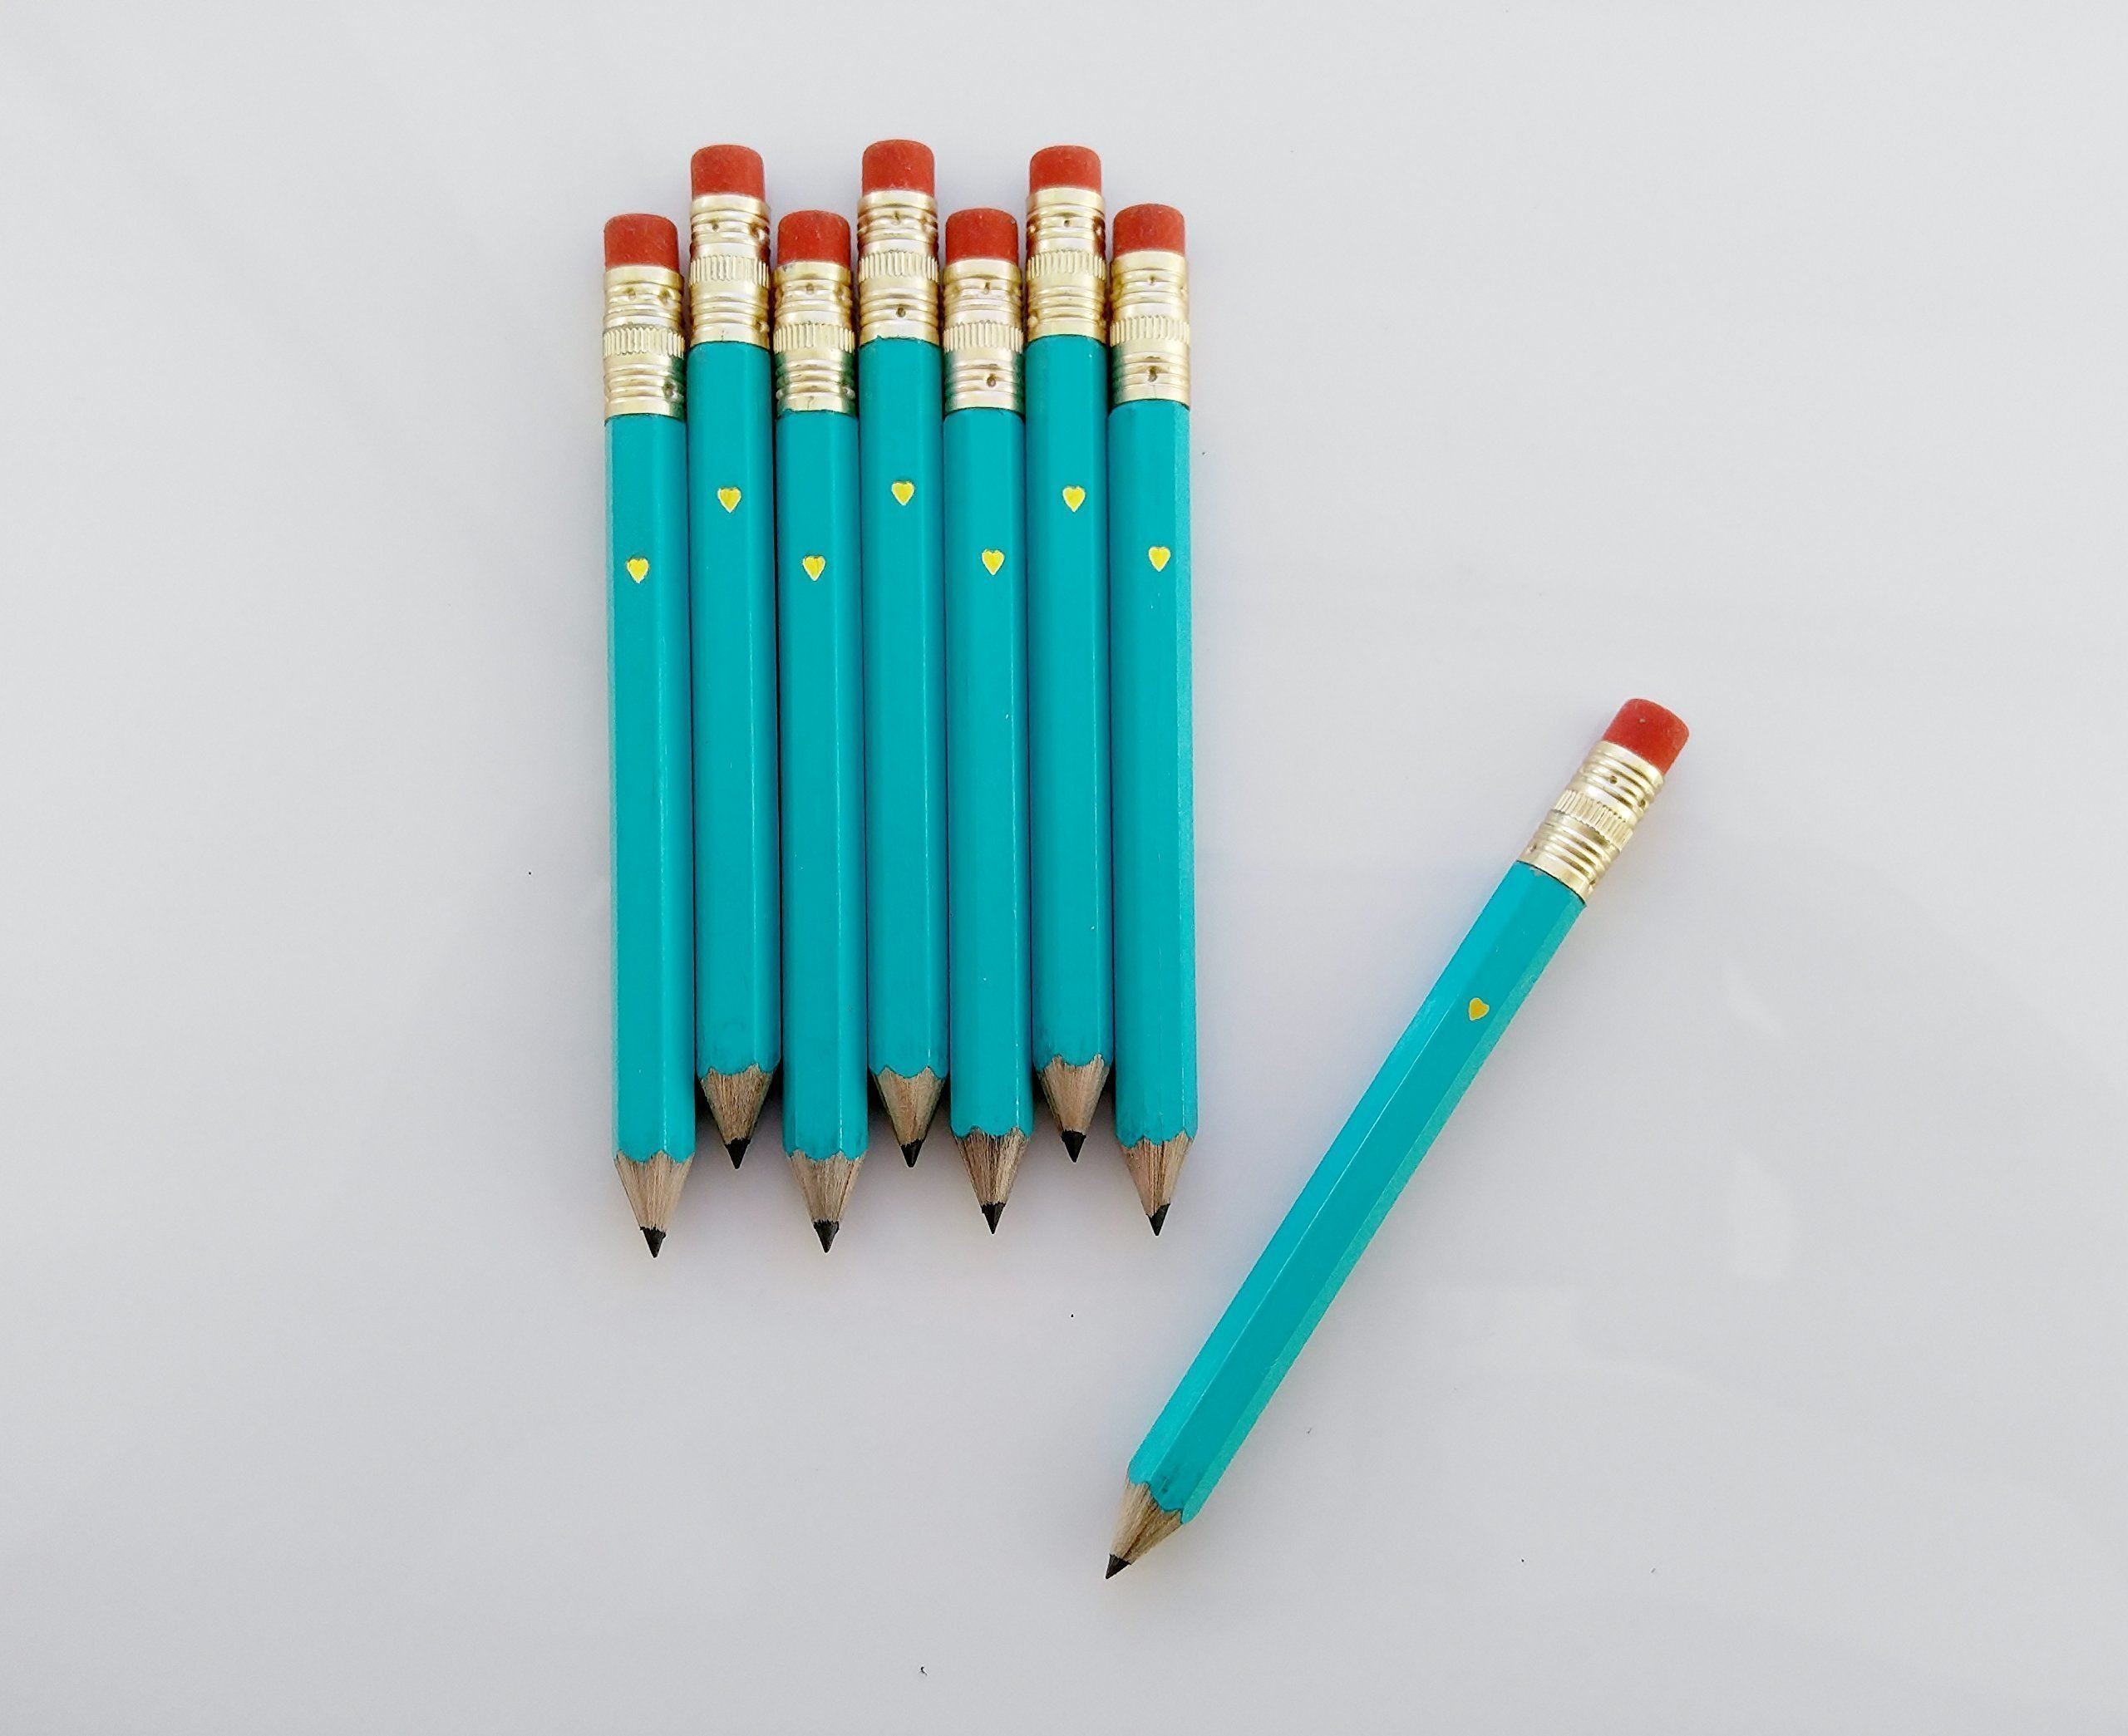 Teal Mini Pencil Set Gold Heart Pencils Adivice for Bride and Groom Wedding Favor Wedding Pencil Set Tiffany Blue Pencil Set Bridal Shower SET OF 10